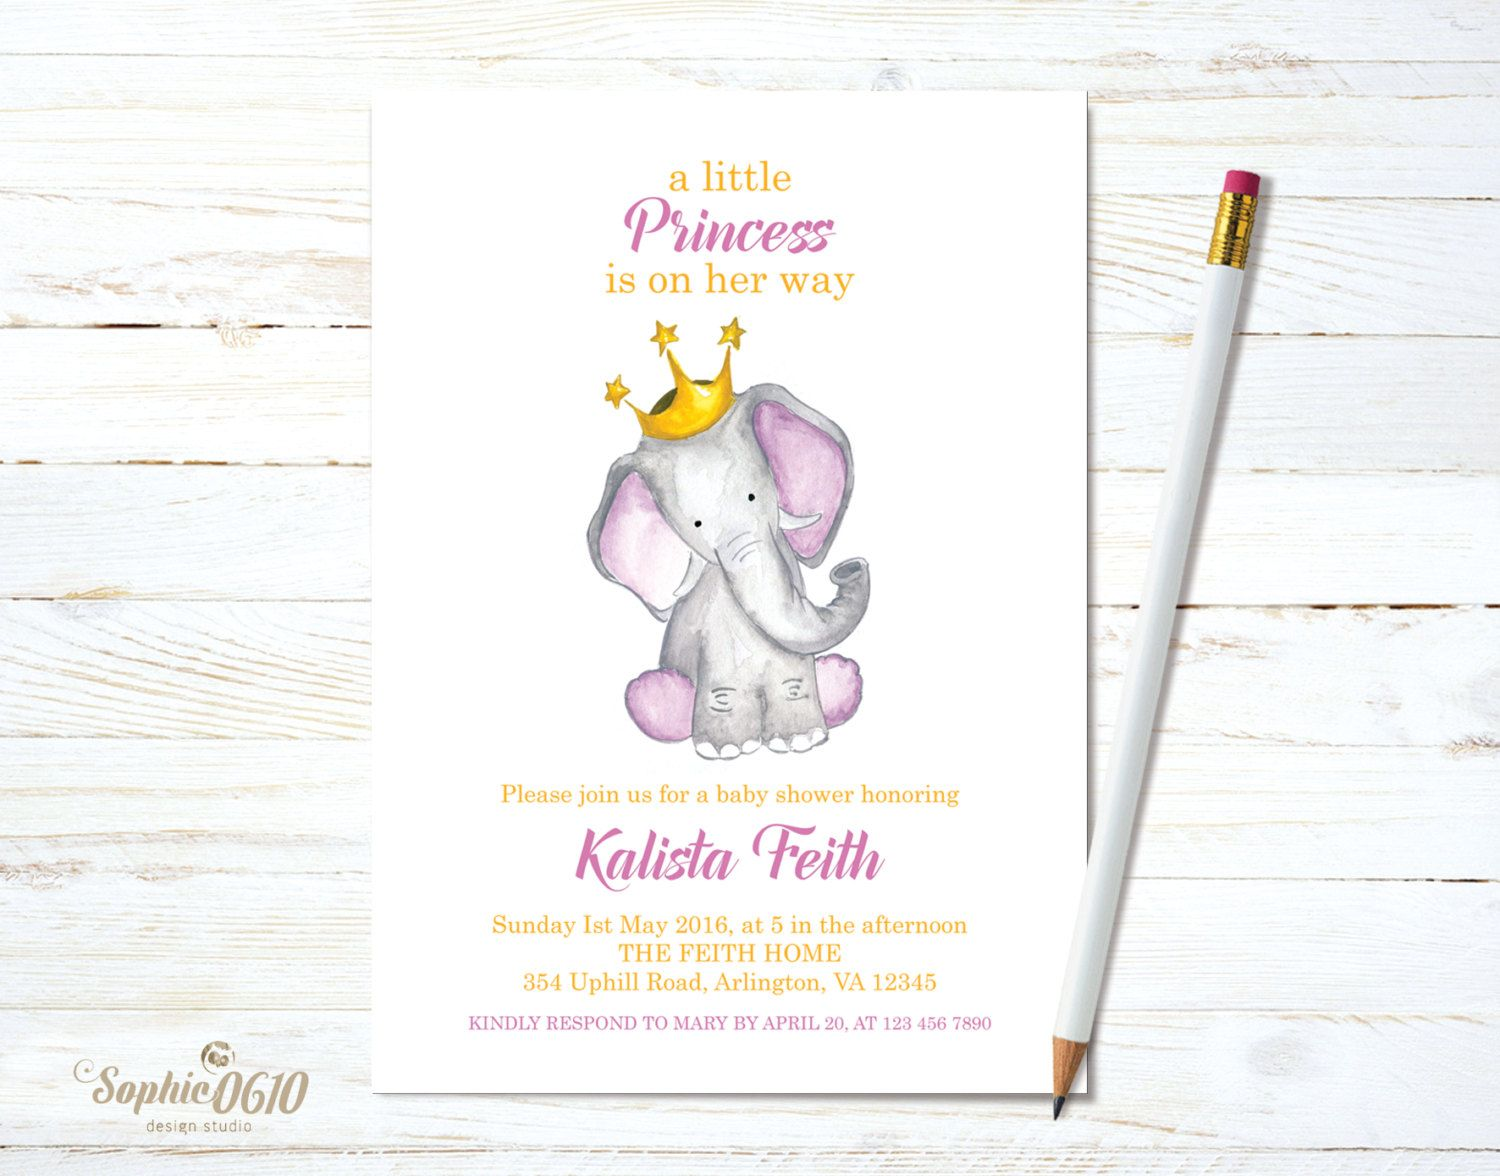 Printable baby shower invitation watercolor princess baby elephant printable baby shower invitation watercolor princess baby elephant digital file by sophie0610designs on etsy filmwisefo